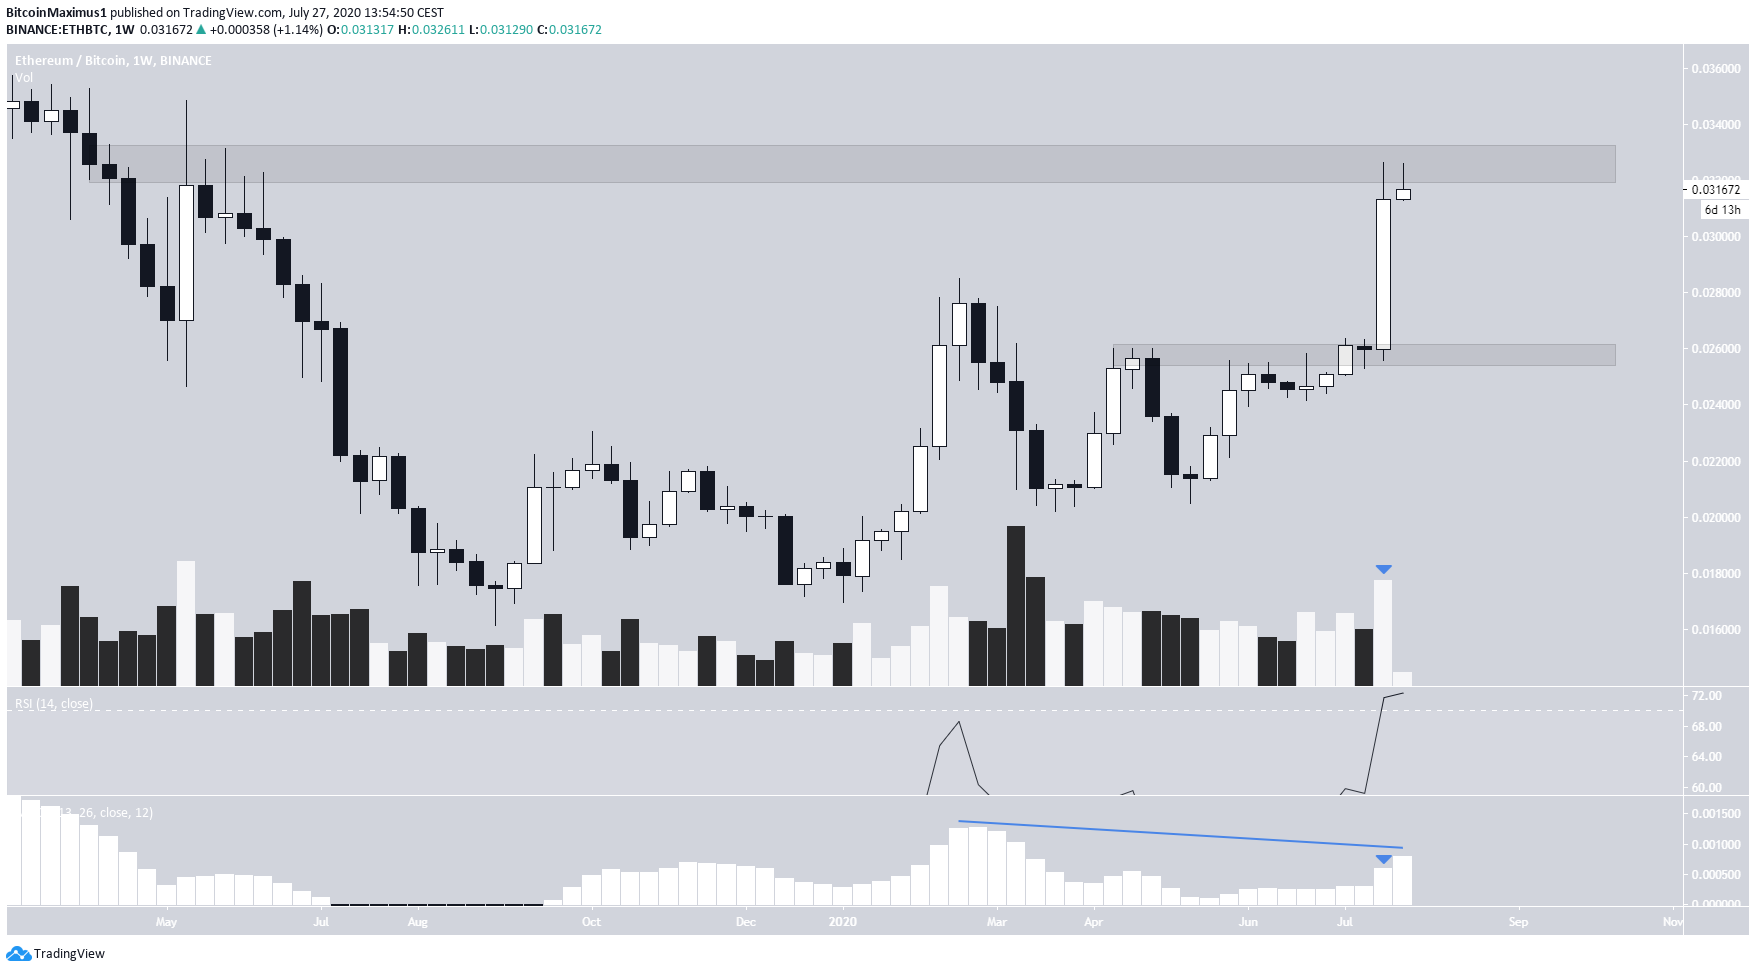 Ethereum Weekly Movement